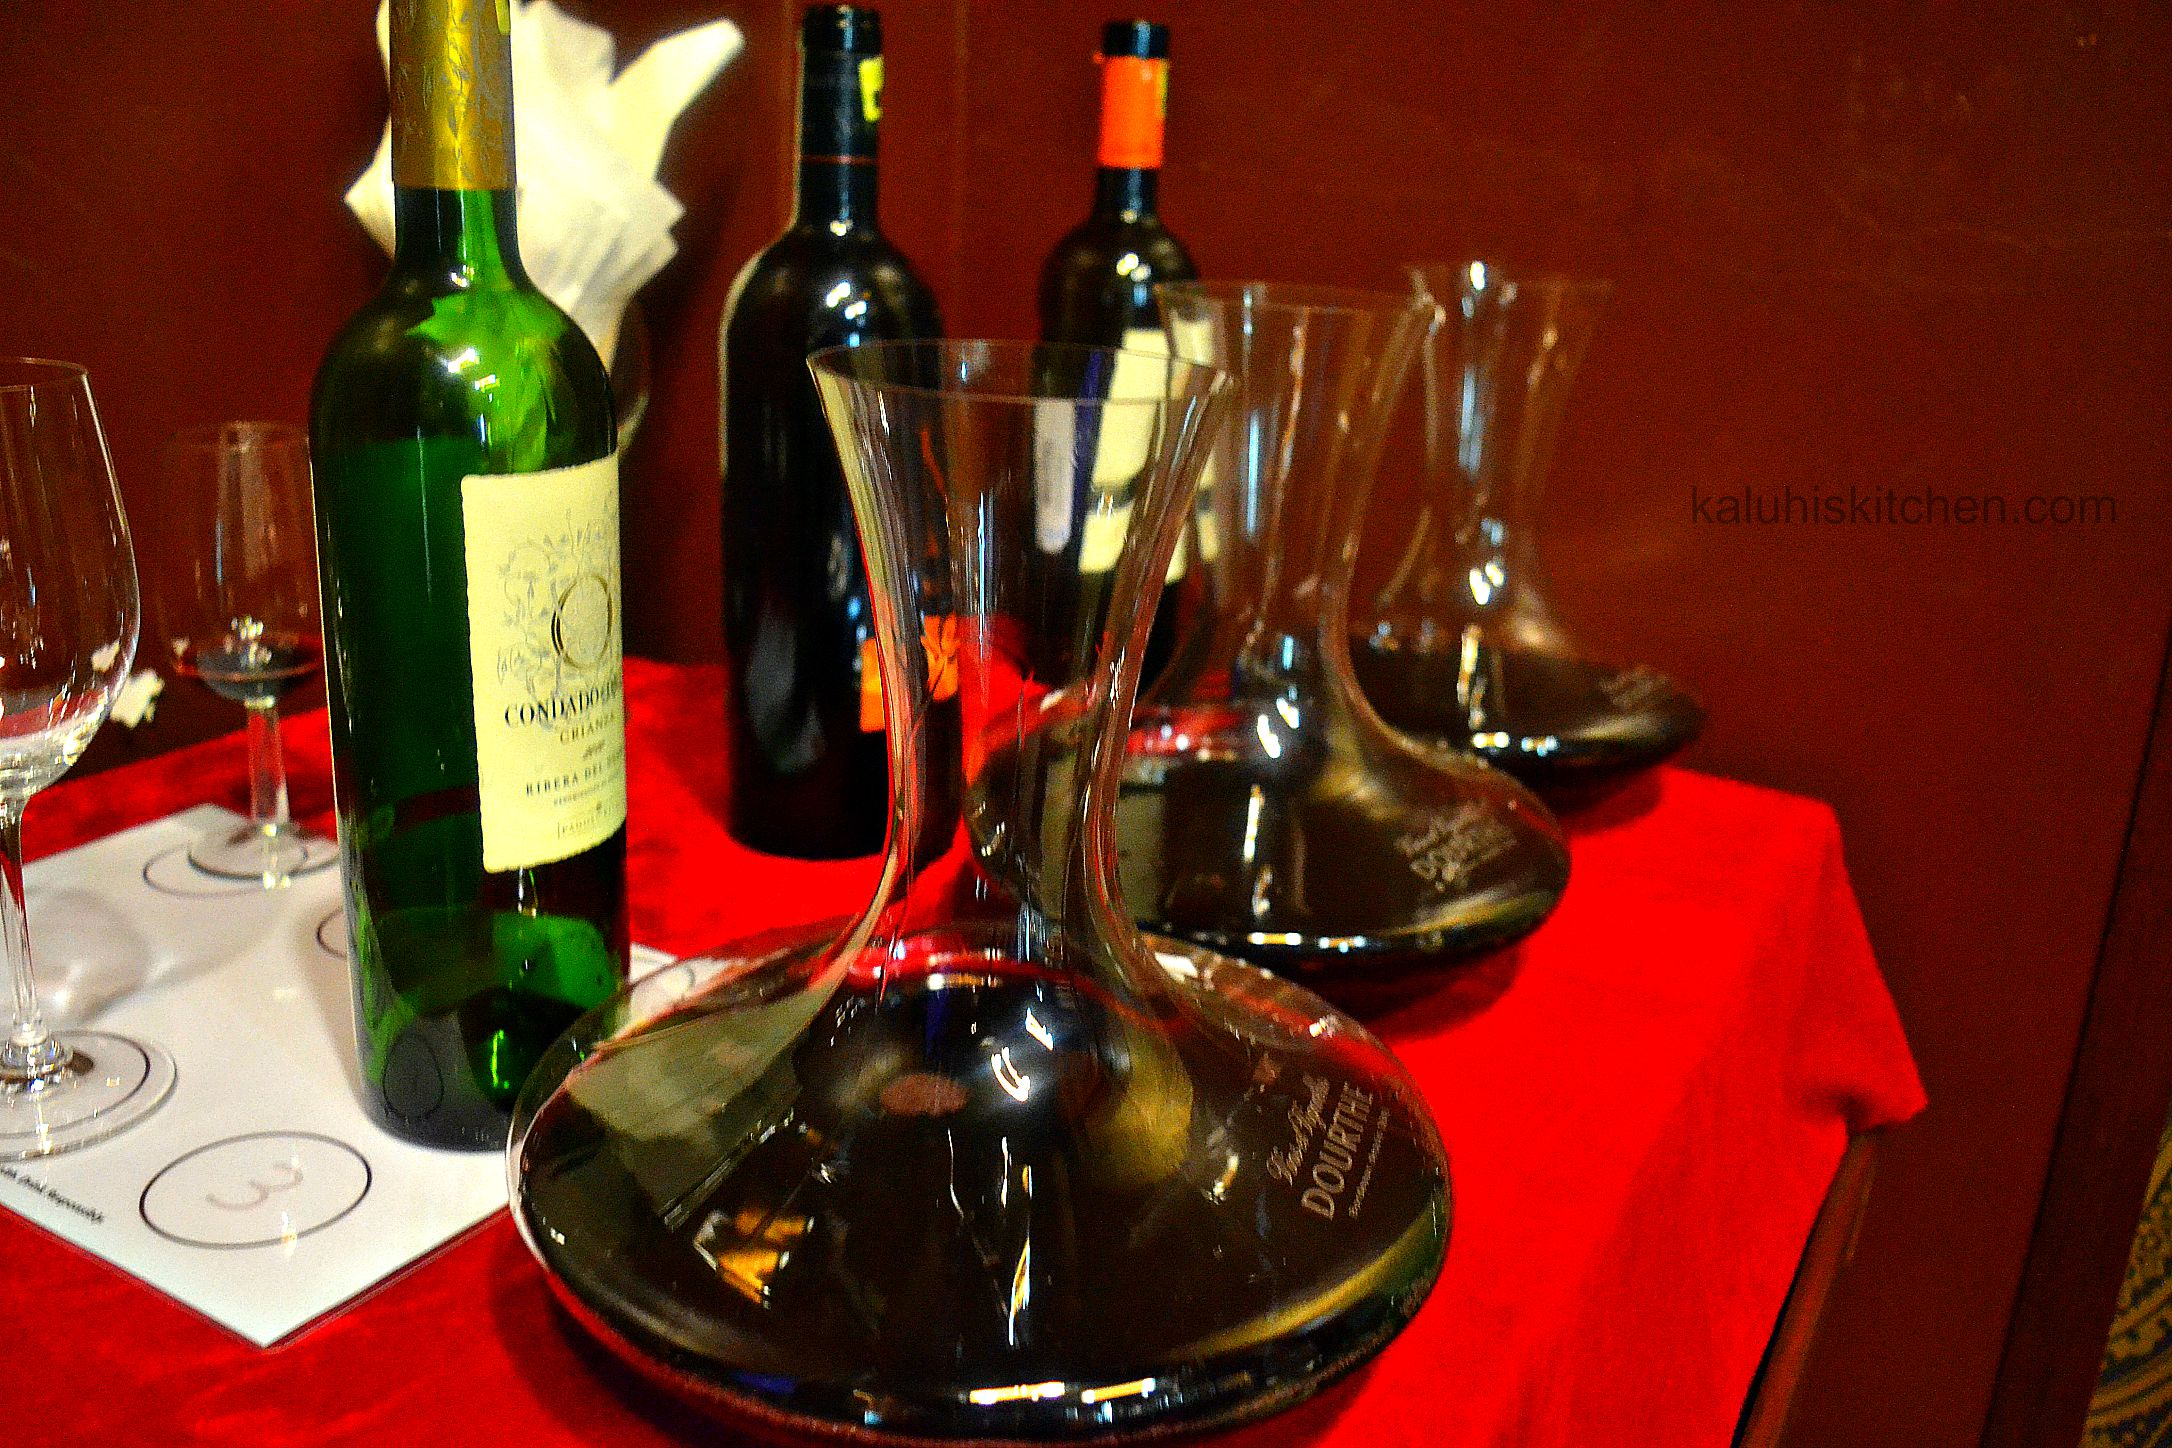 best wine n nairobi served at Salt bar and grill in Nairobi_salt grill and bar array of different wines and other drinks. Only the best found at salt_kaluhiskitchen.com